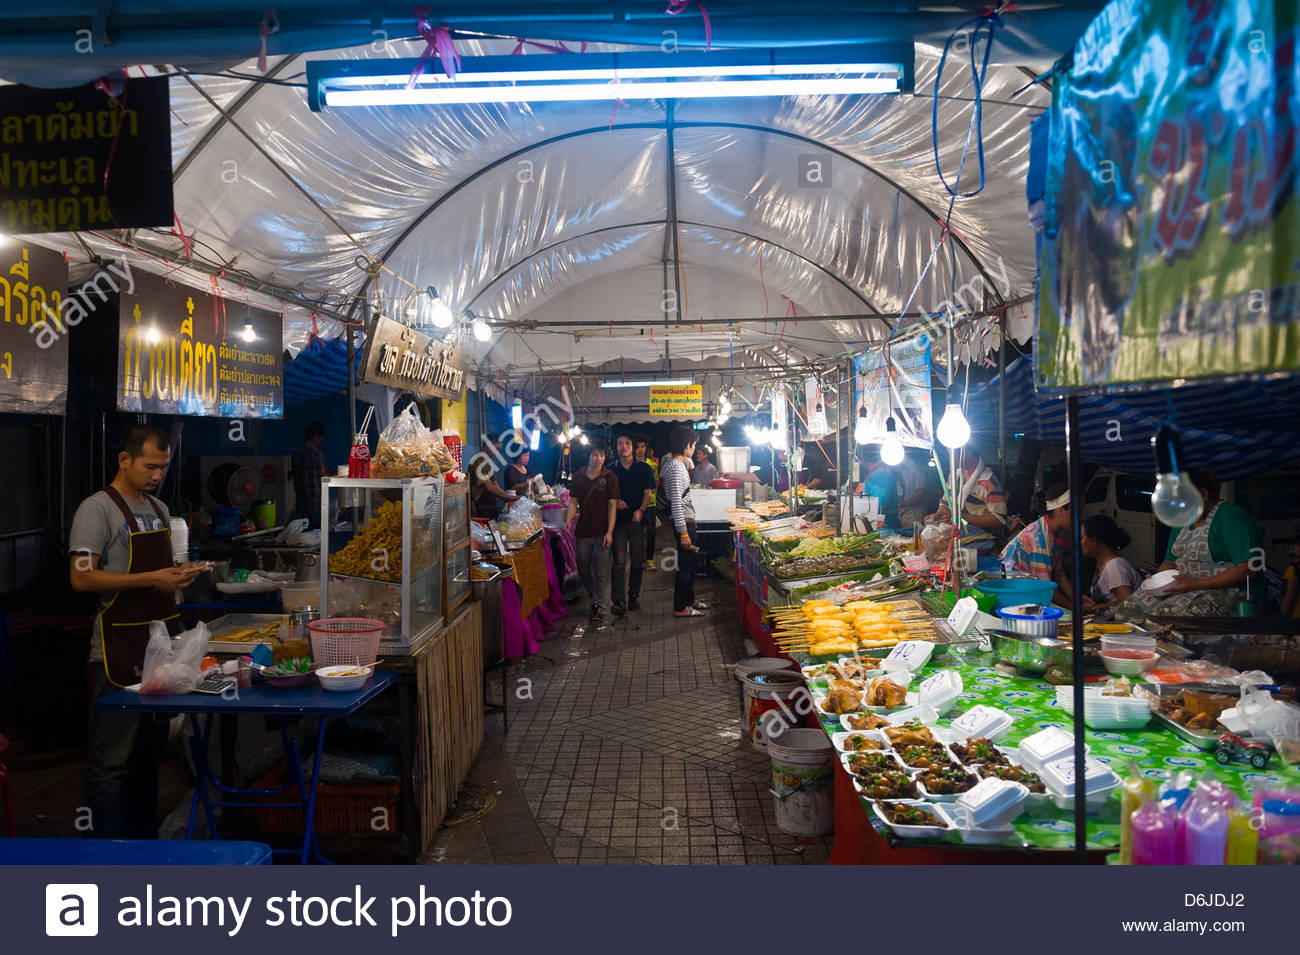 A night street food market, Bangkok, Thailand - Stock Image